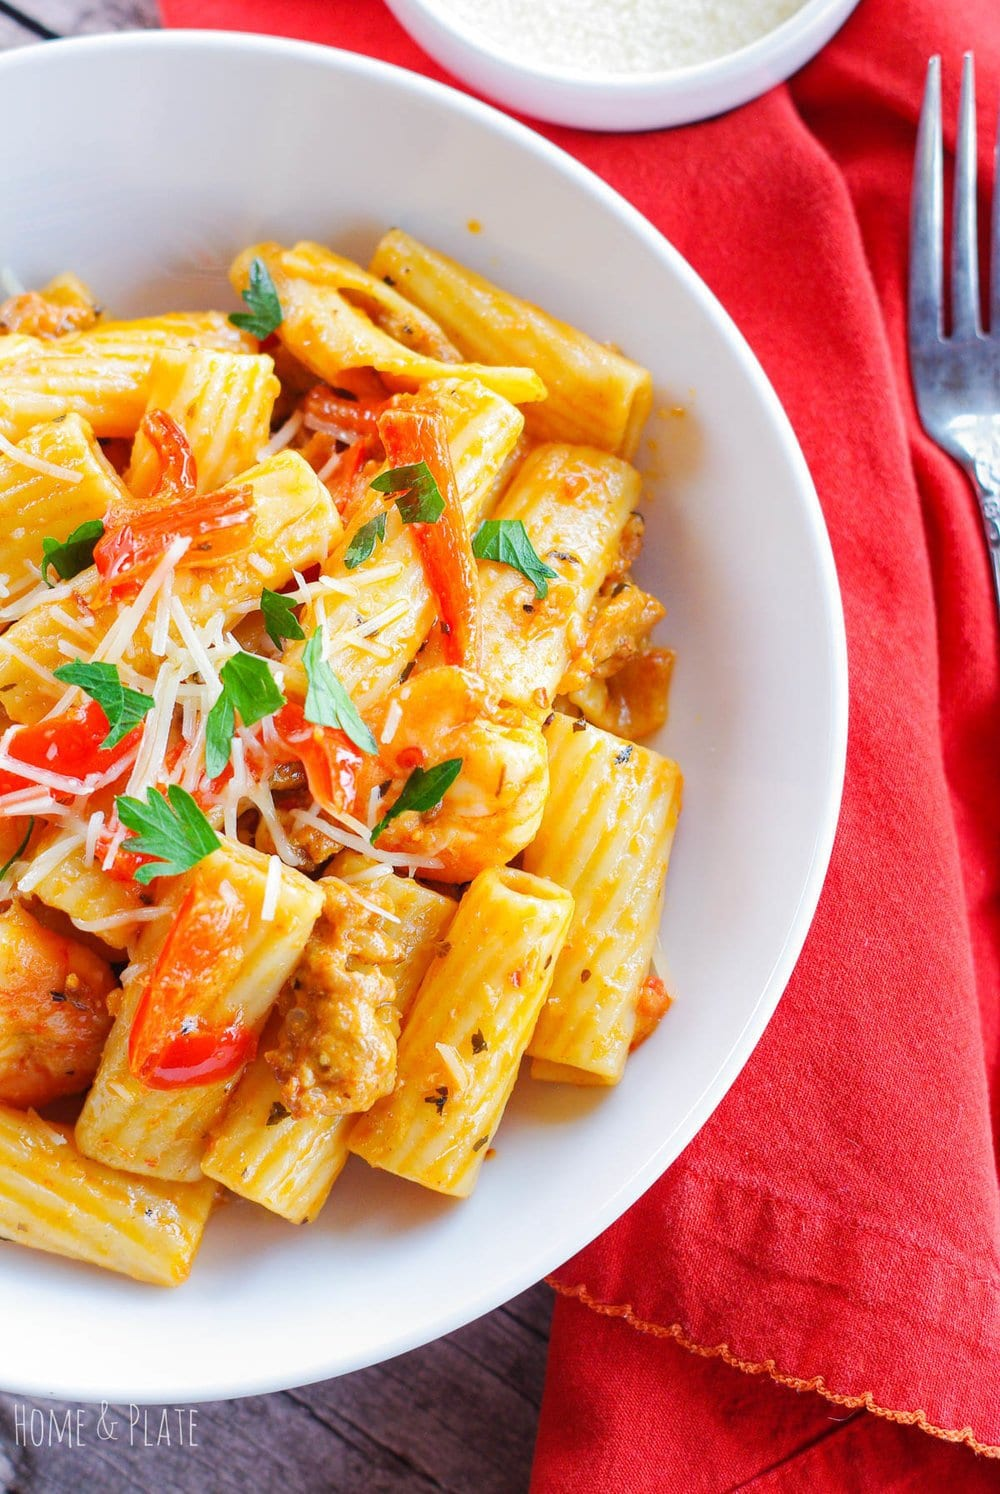 Rigatoni Pasta with Sausage and Shrimp in a Spicy Parmesan Cream Sauce